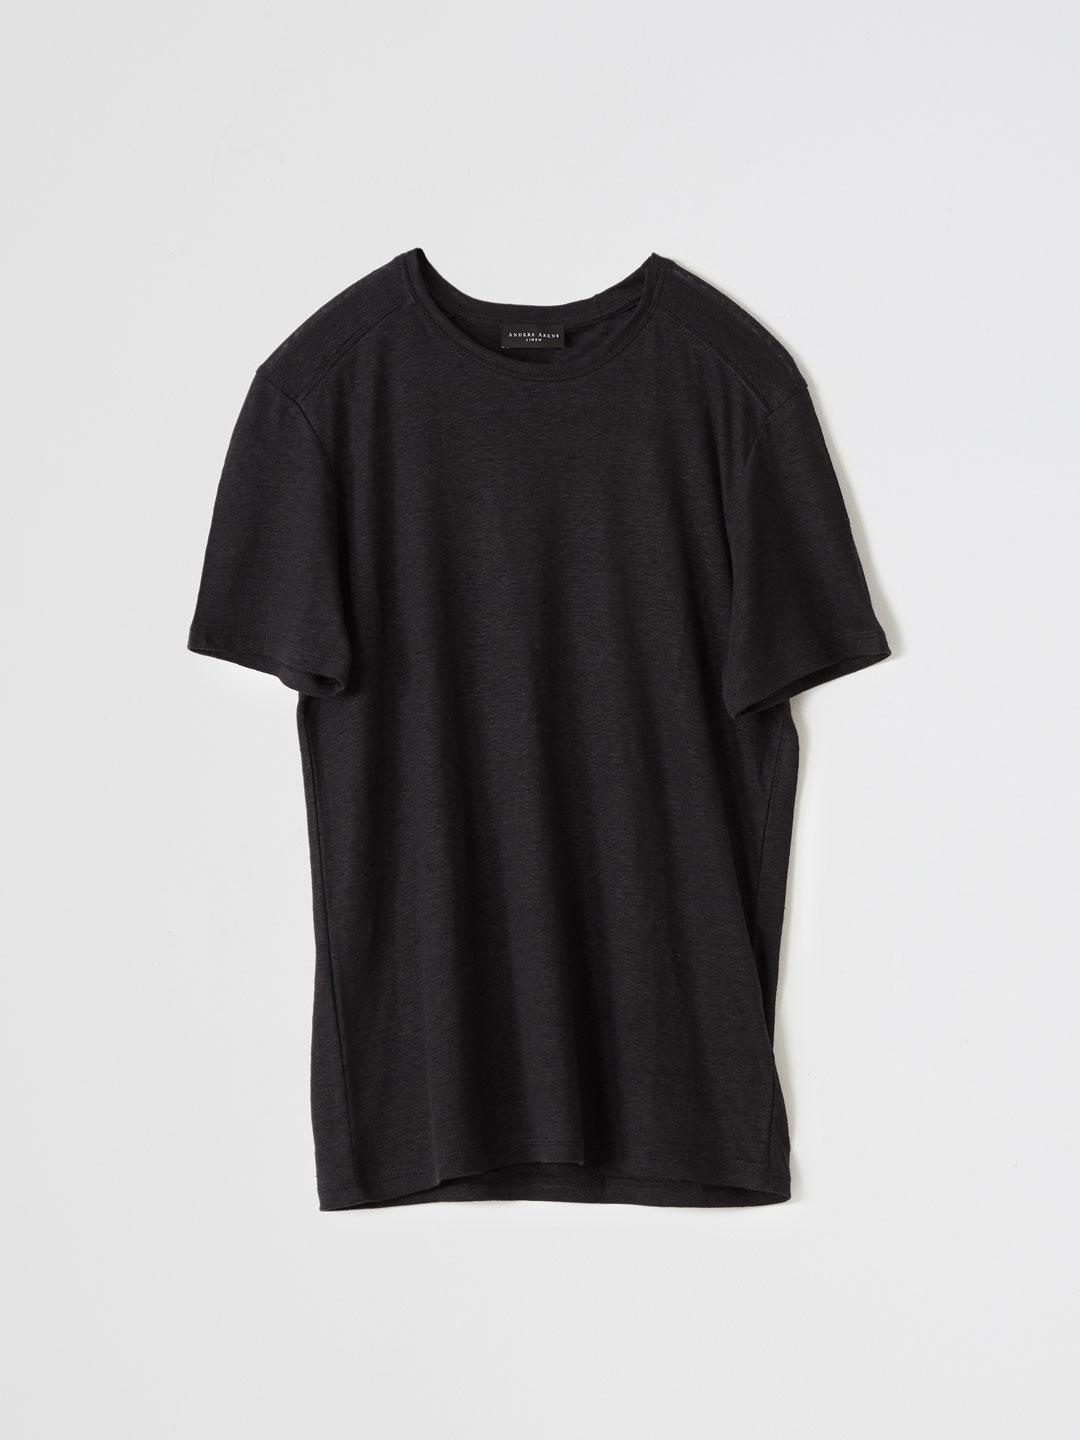 MARBELLA T-shirt - Black